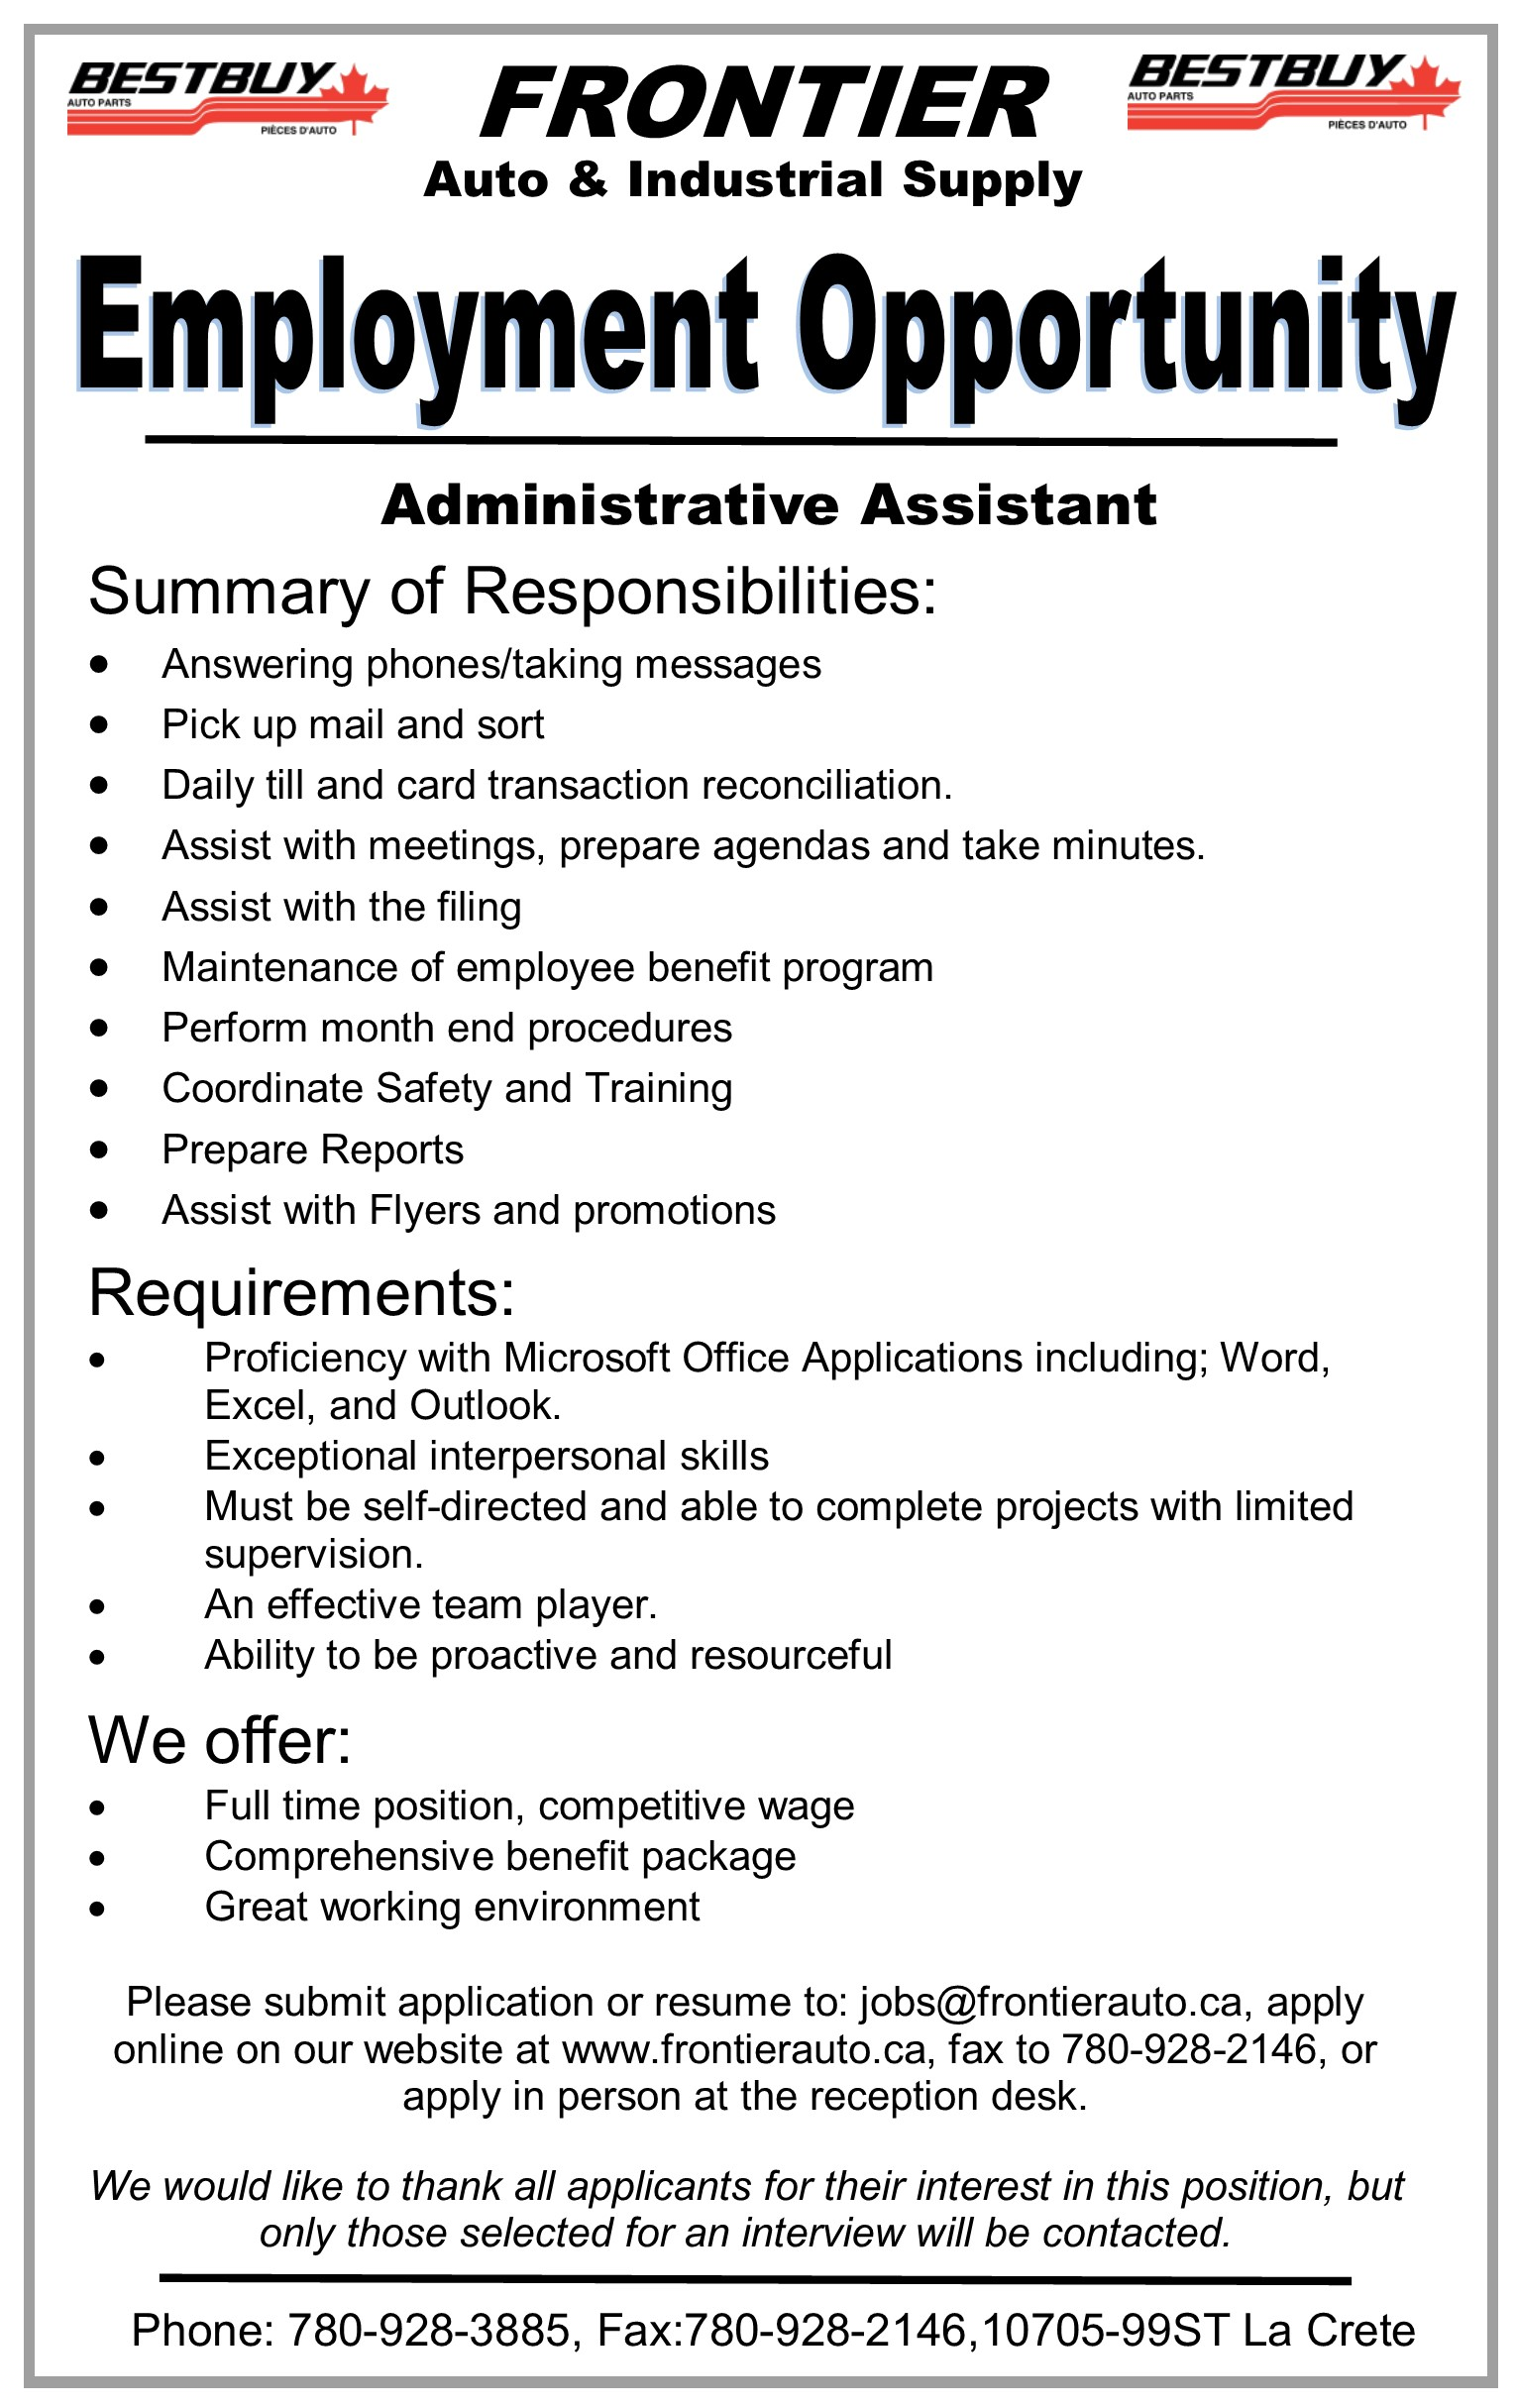 Employment Ad-Frontier Auto-Administrative Assistant-June 23, 2017